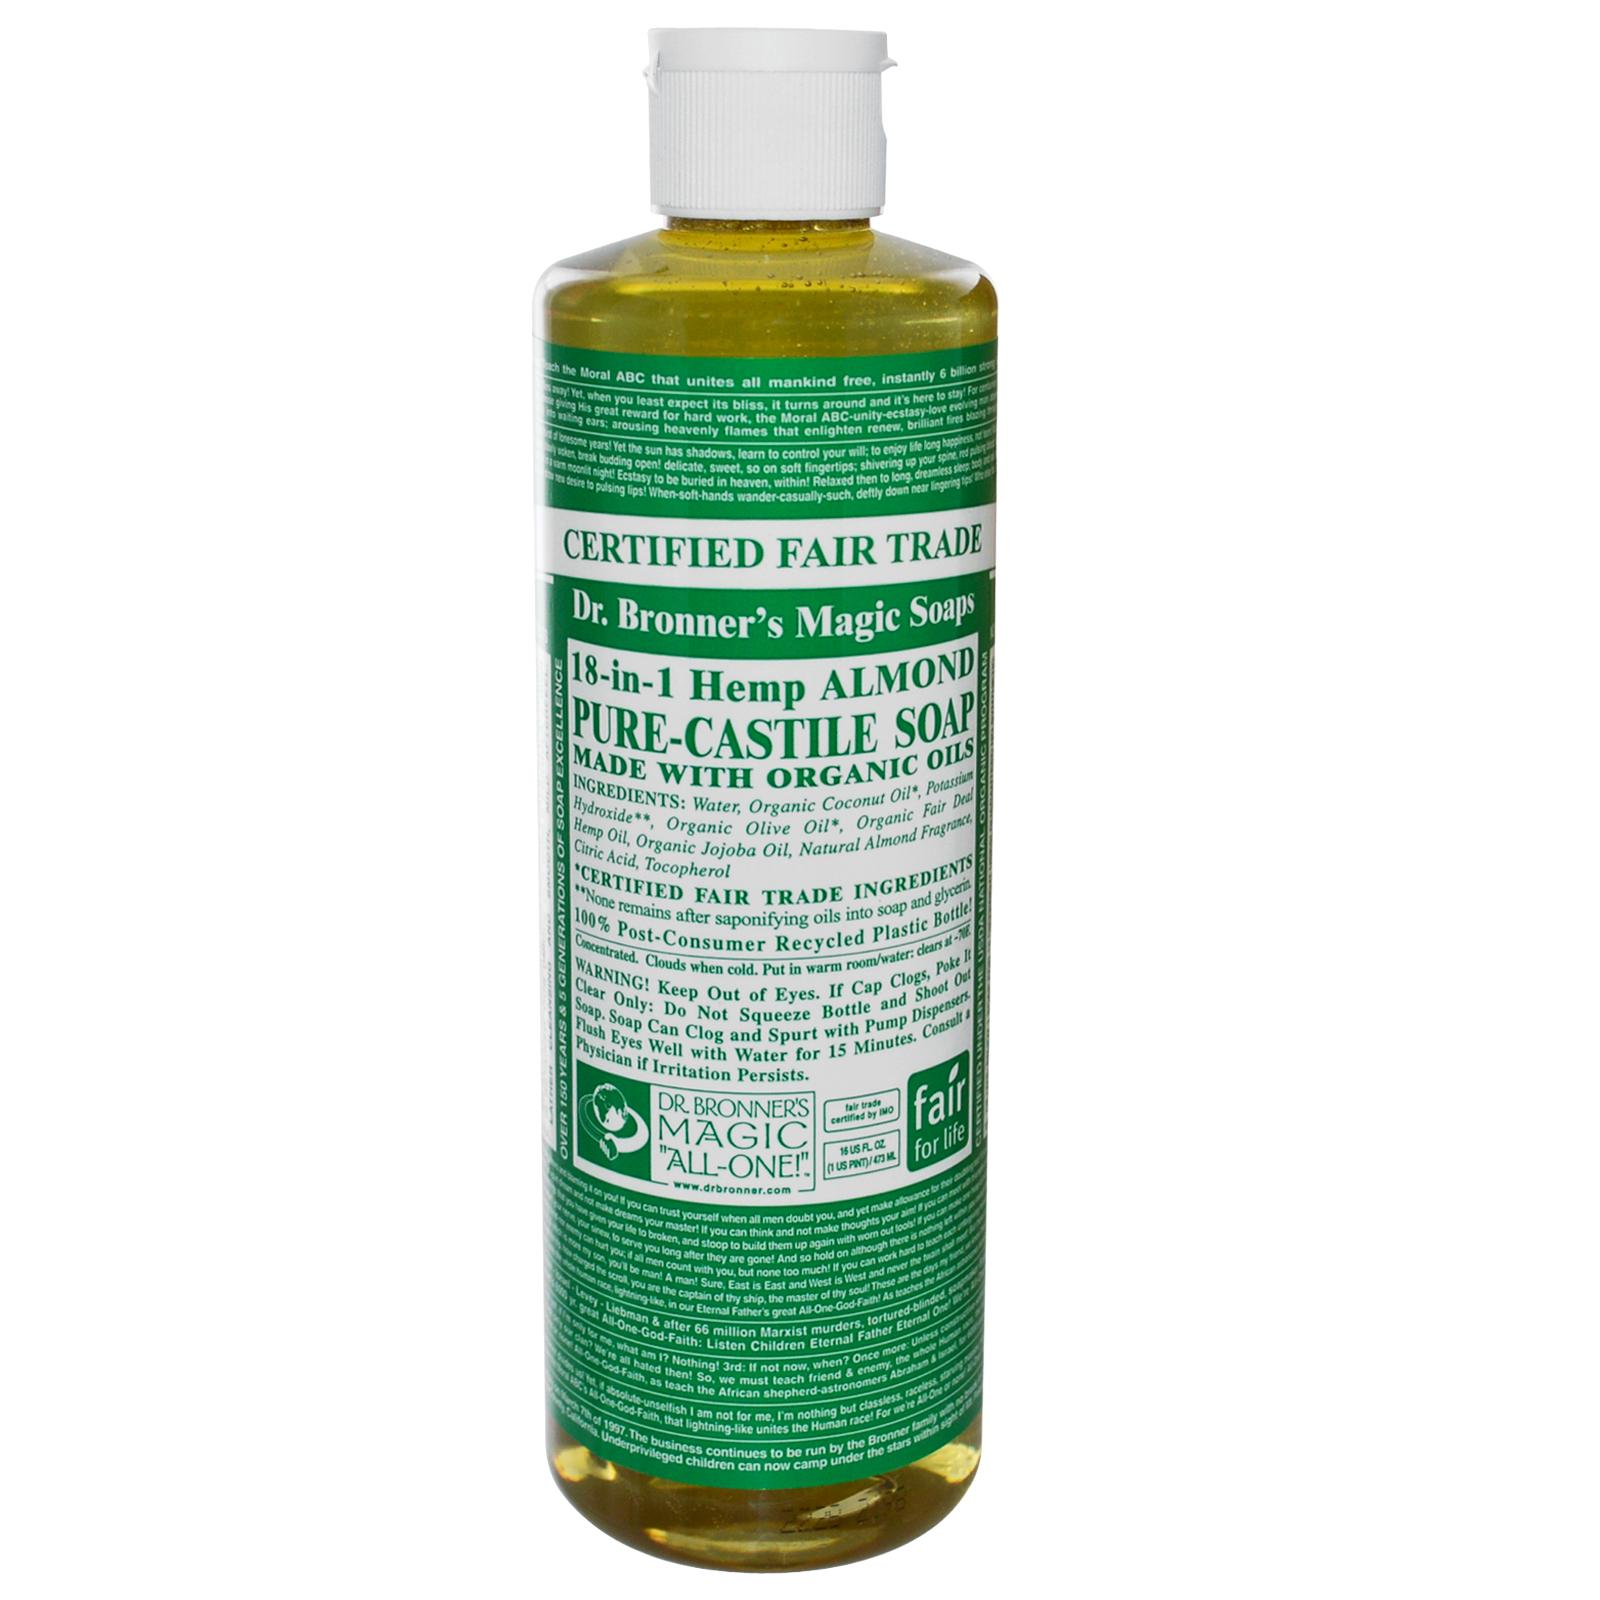 Dr bronners magic soap review